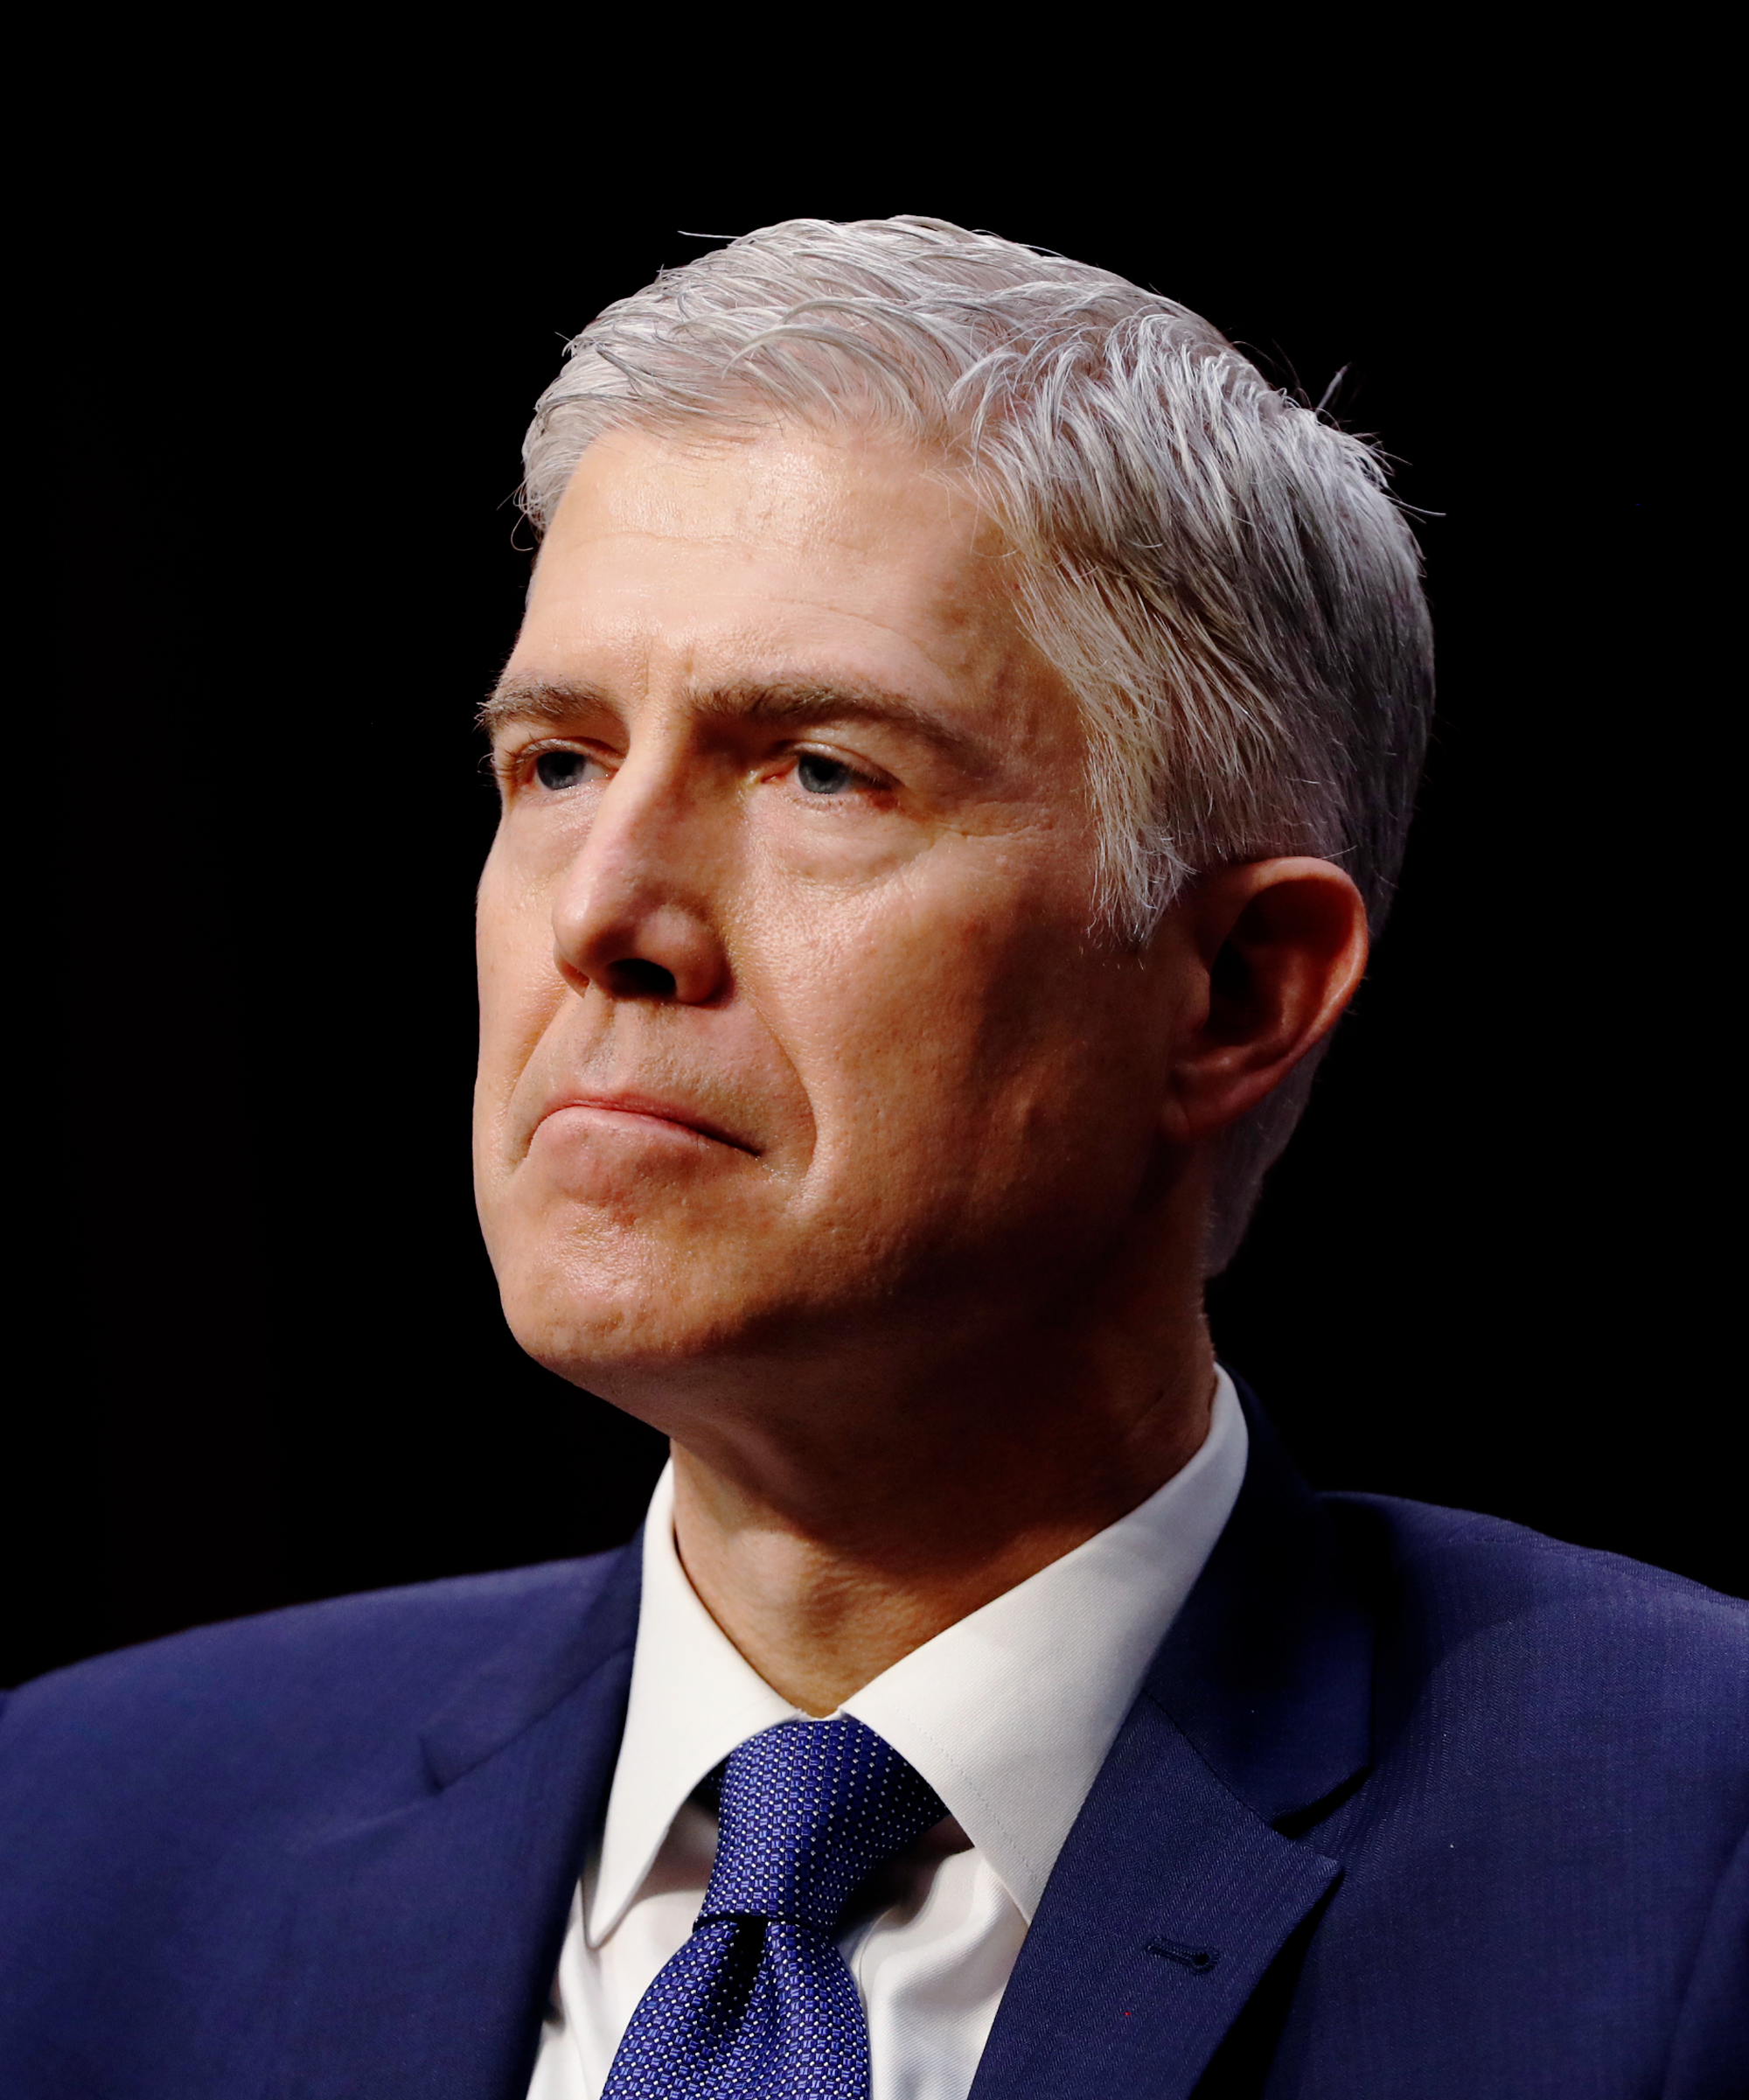 Neil Gorsuch Confirmed to Supreme Court After GOP Changed Playing Field